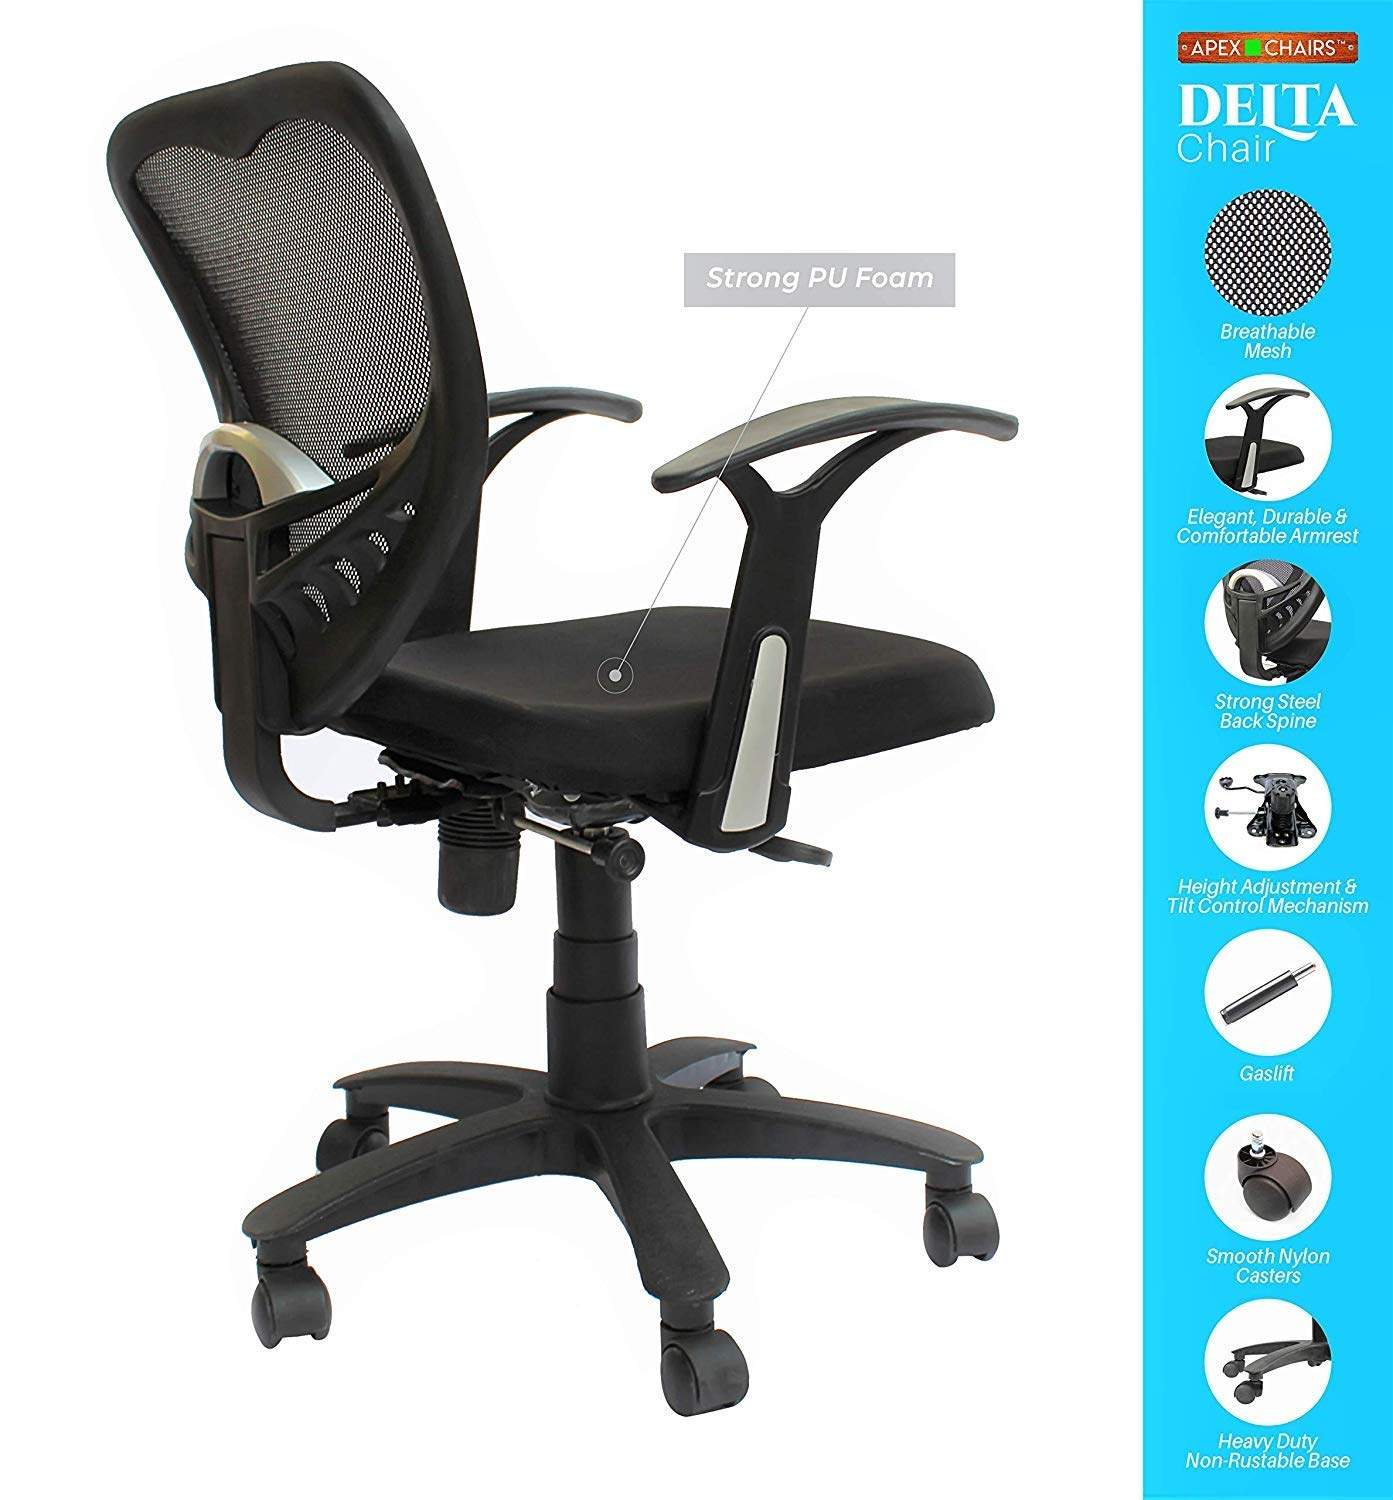 SAVYA HOME Apex Chairs Delta MB Umbrella Base Office Chair